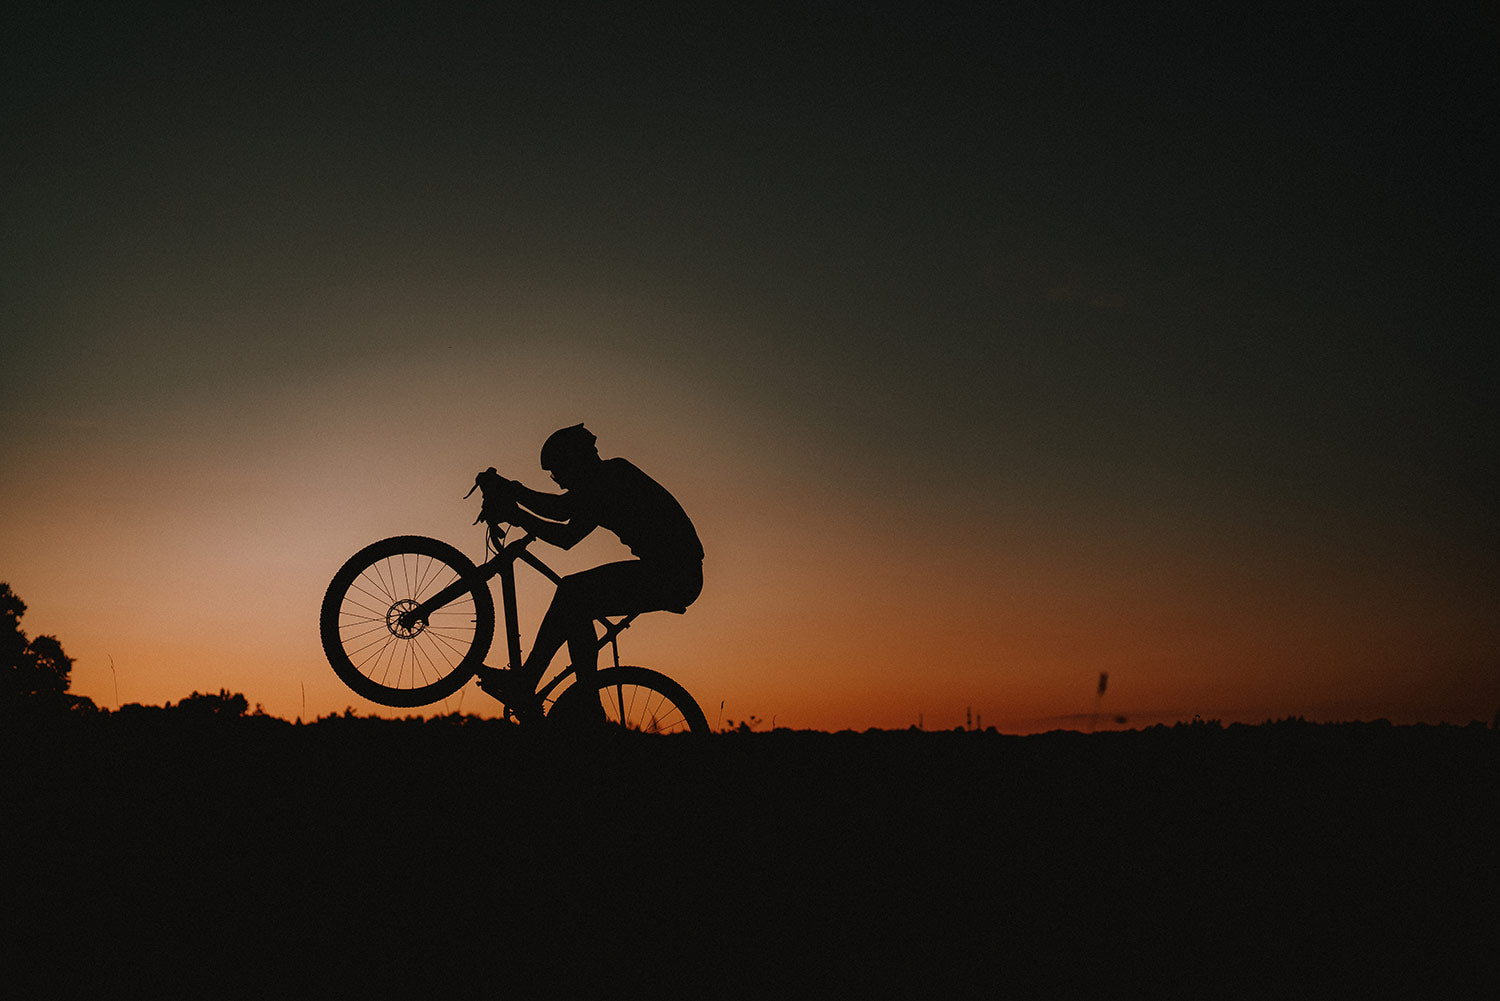 Cyclist in Silhouette doing a wheely